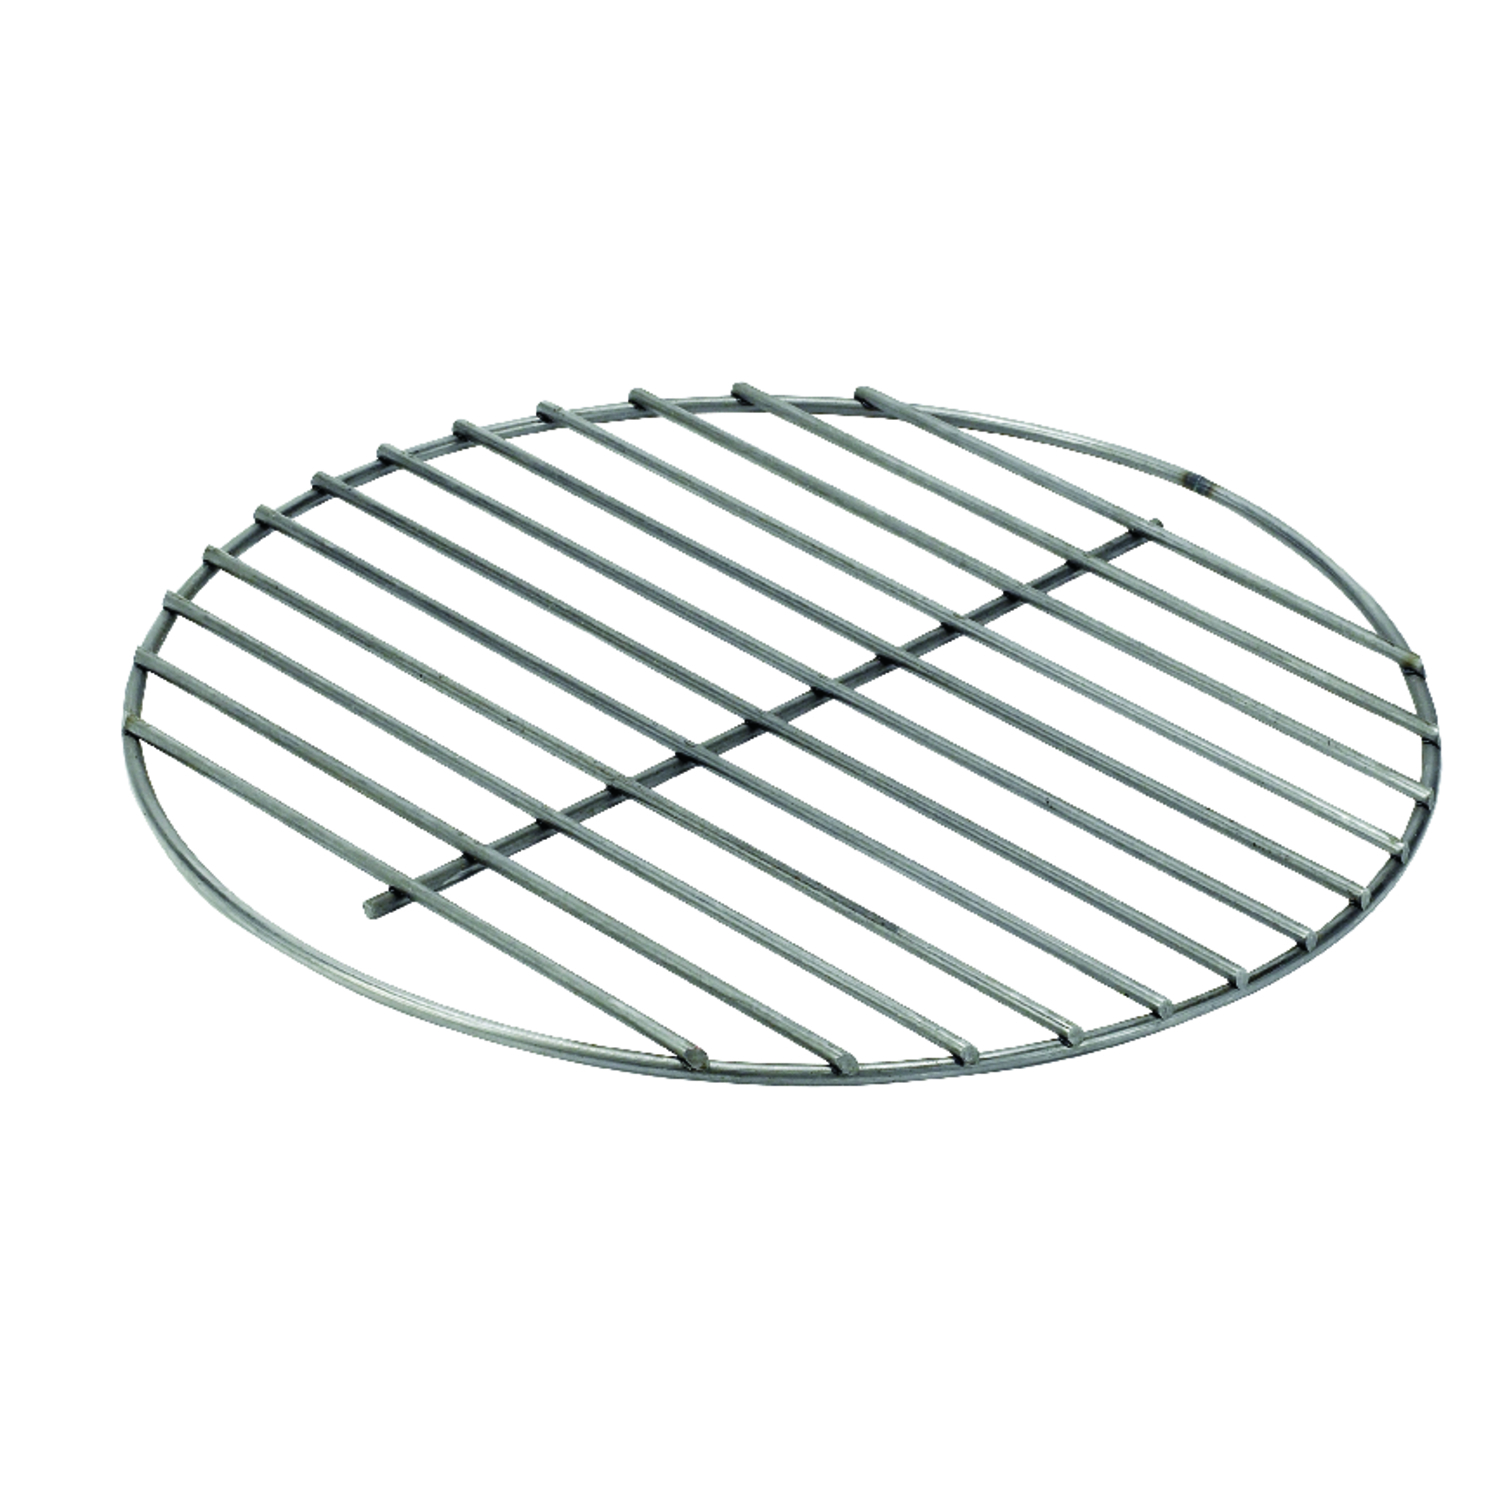 Weber Steel Charcoal Grate 0 3 In H X 10 5 W